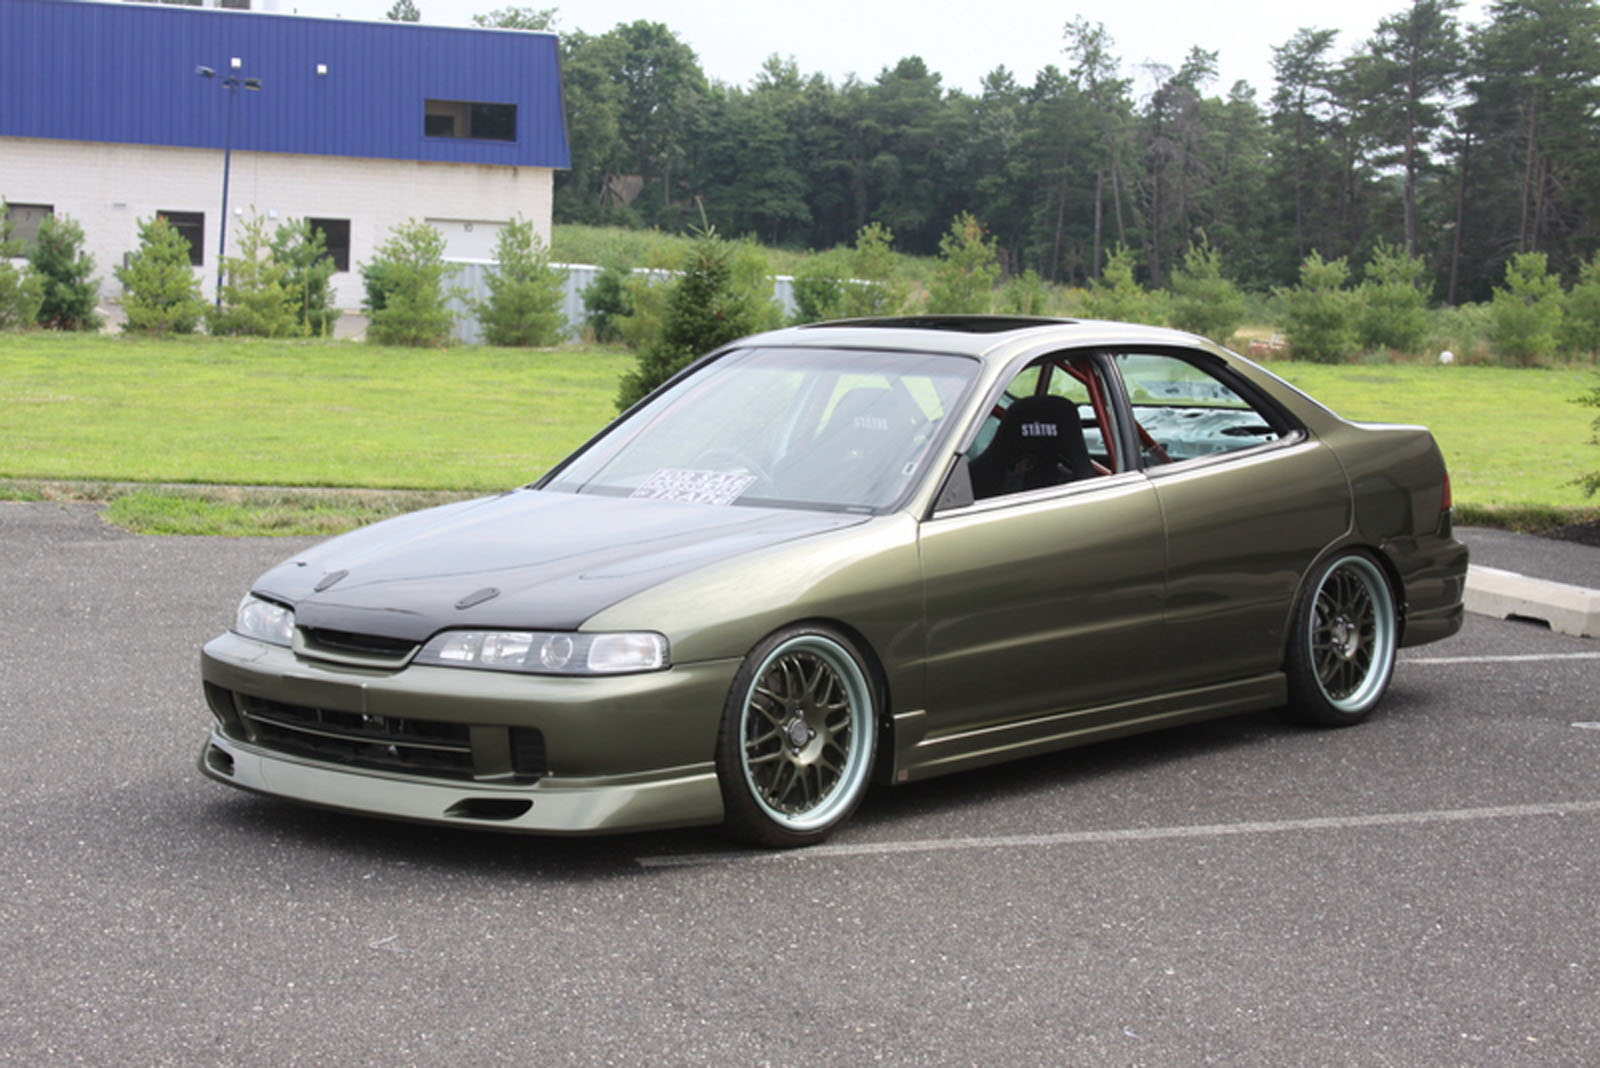 1994 Acura Integra For Sale | New Jersey